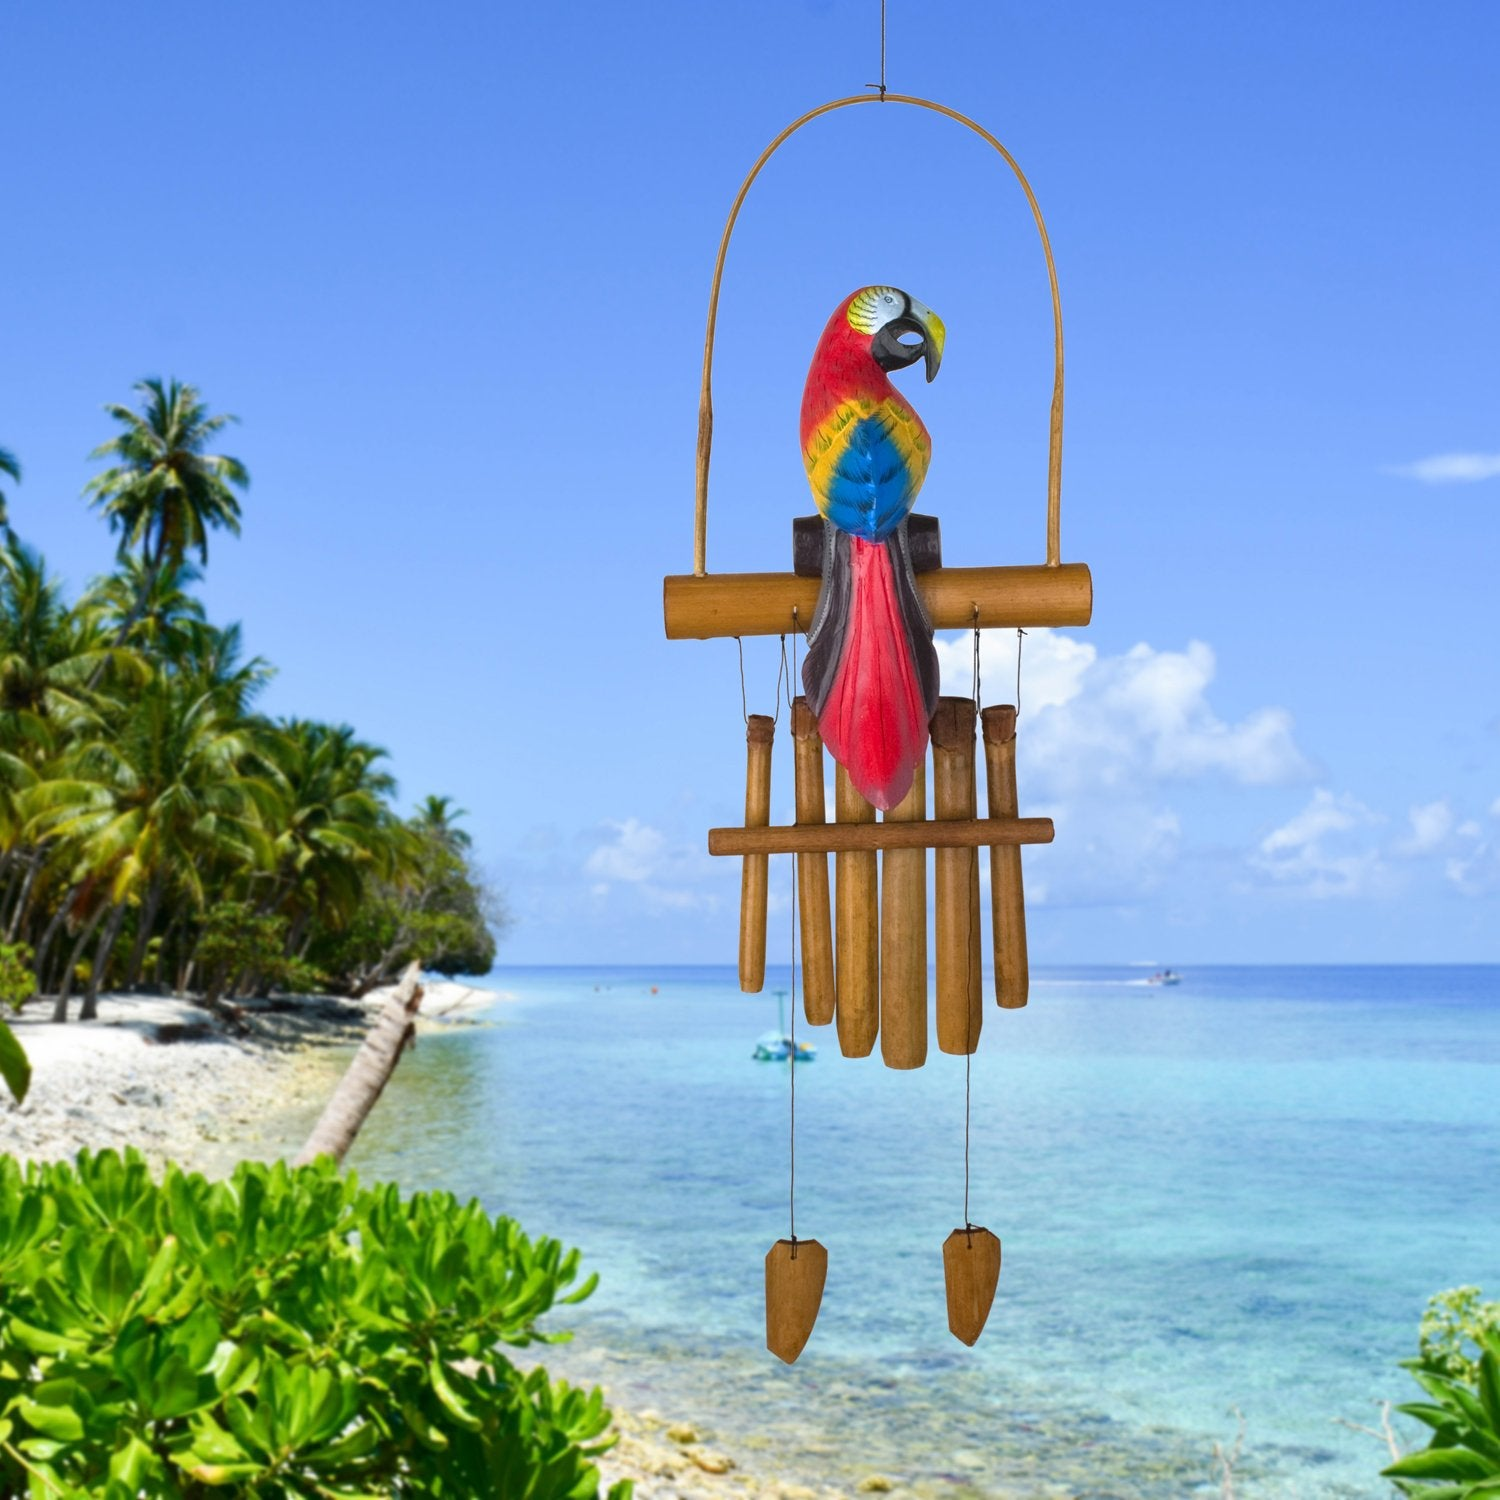 Animal Bamboo Chime - Parrot lifestyle image